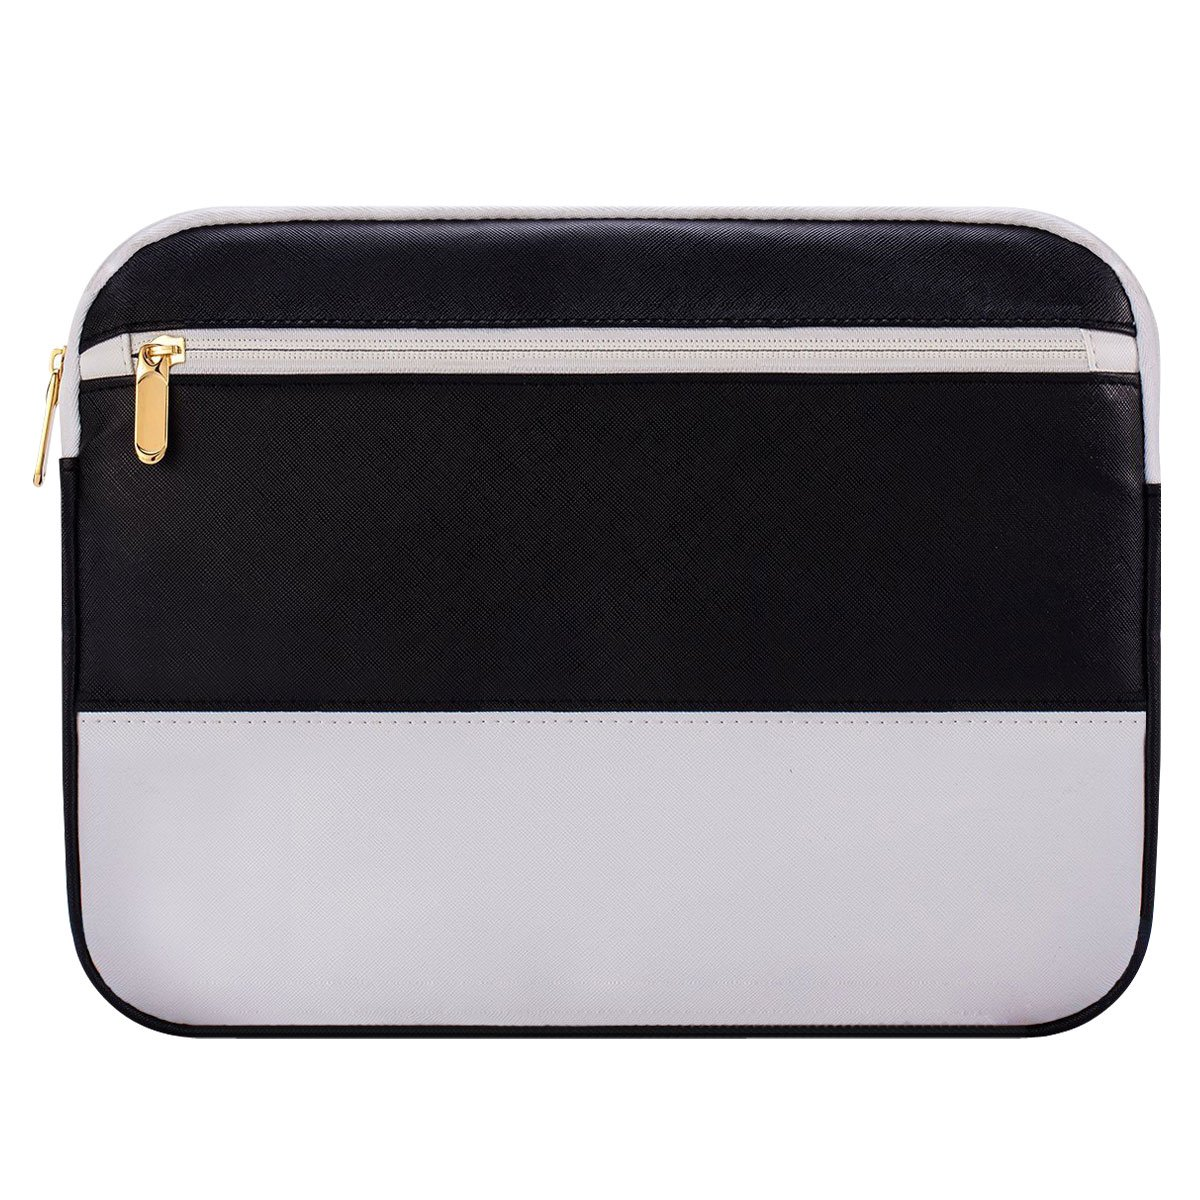 13 Inch Laptop Sleeve 13.3 Inch for Macbook Air/Pro/Retina Display 12.9 Inch iPad Case Bag 13'' Laptop case compatible with Apple/Samsung/HP/Asus/Acer/Dell etc Assorted color Black&White